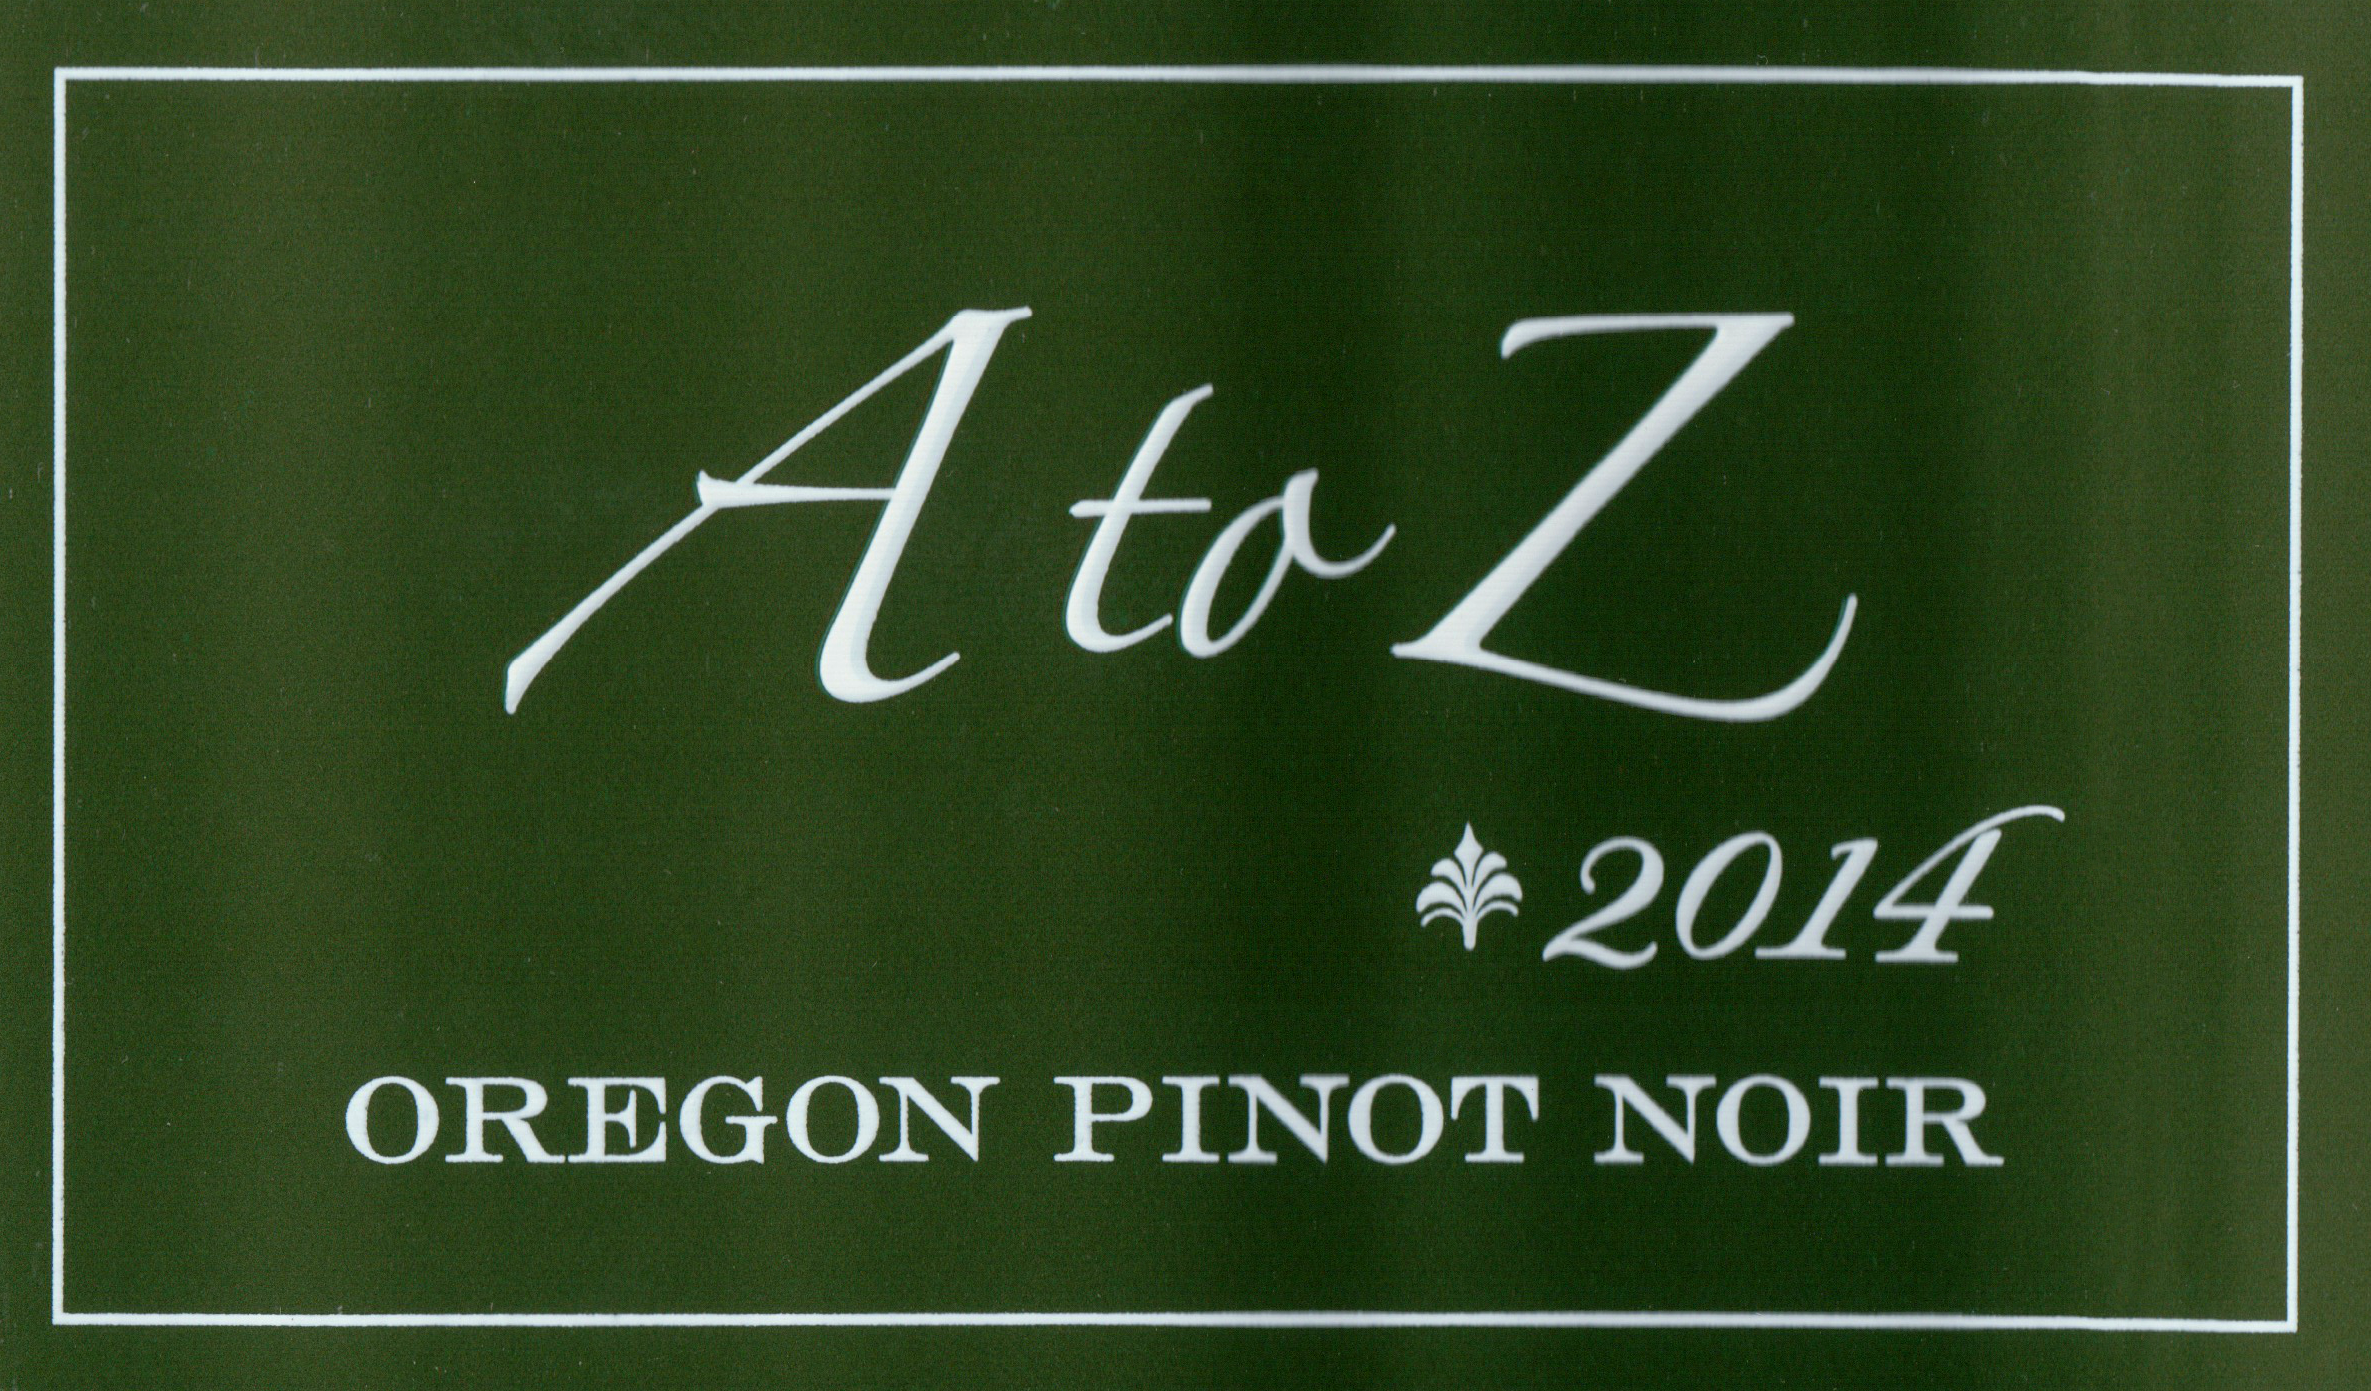 A great way to get into Pinot Noir, without paying over $20 for it. A to Z can be found for as little as $14 in some markets.